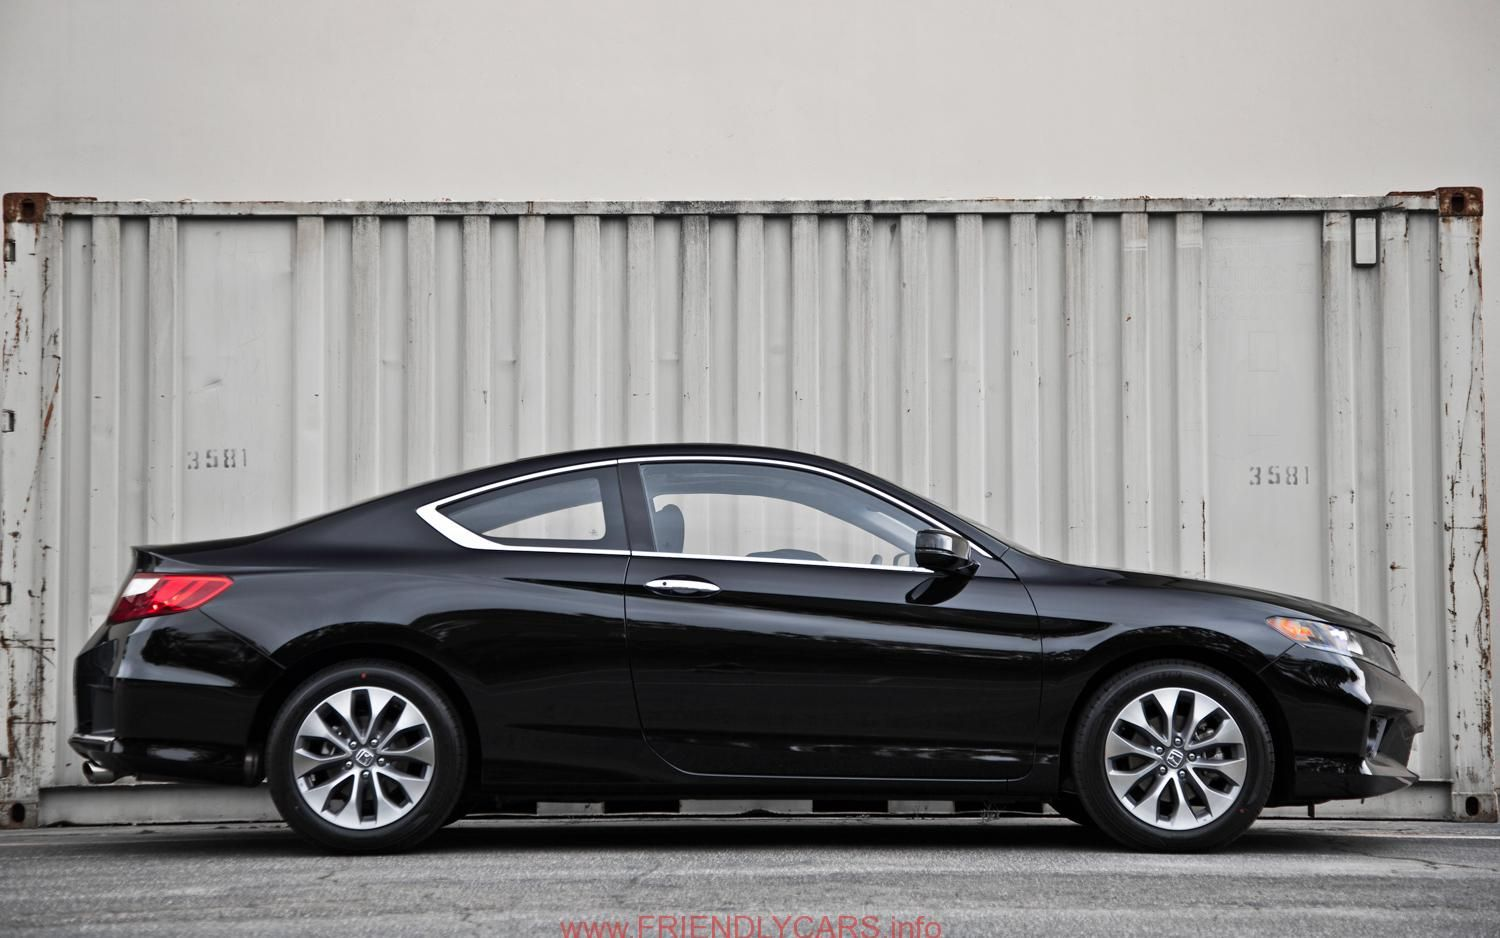 Exceptionnel Nice Honda Accord Coupe 2008 Black Car Images Hd 2013 Honda Accord EX Coupe  First Test